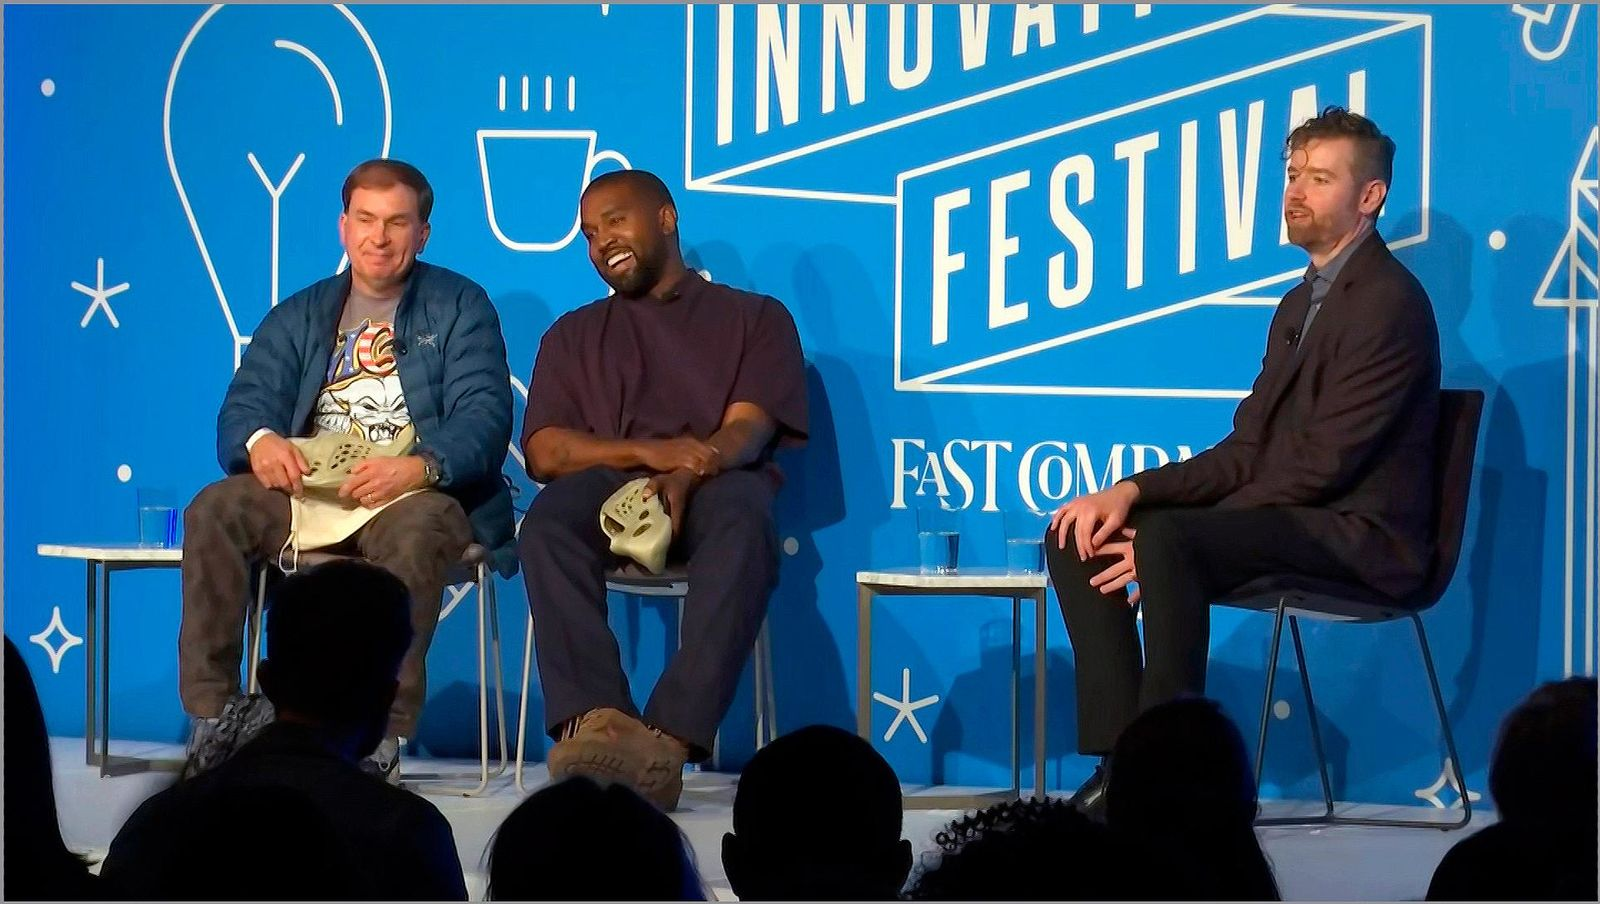 This image taken from video shows Kanye West, right, with Steven Smith, lead designer at Yeezy as Fast Company senior writer Mark Wilson, right, looks on during a discussion on fashion and design at the Fast Company Innovation Festival in New York on Thursday, Nov. 7, 2019. (AP Photo/David Martin)